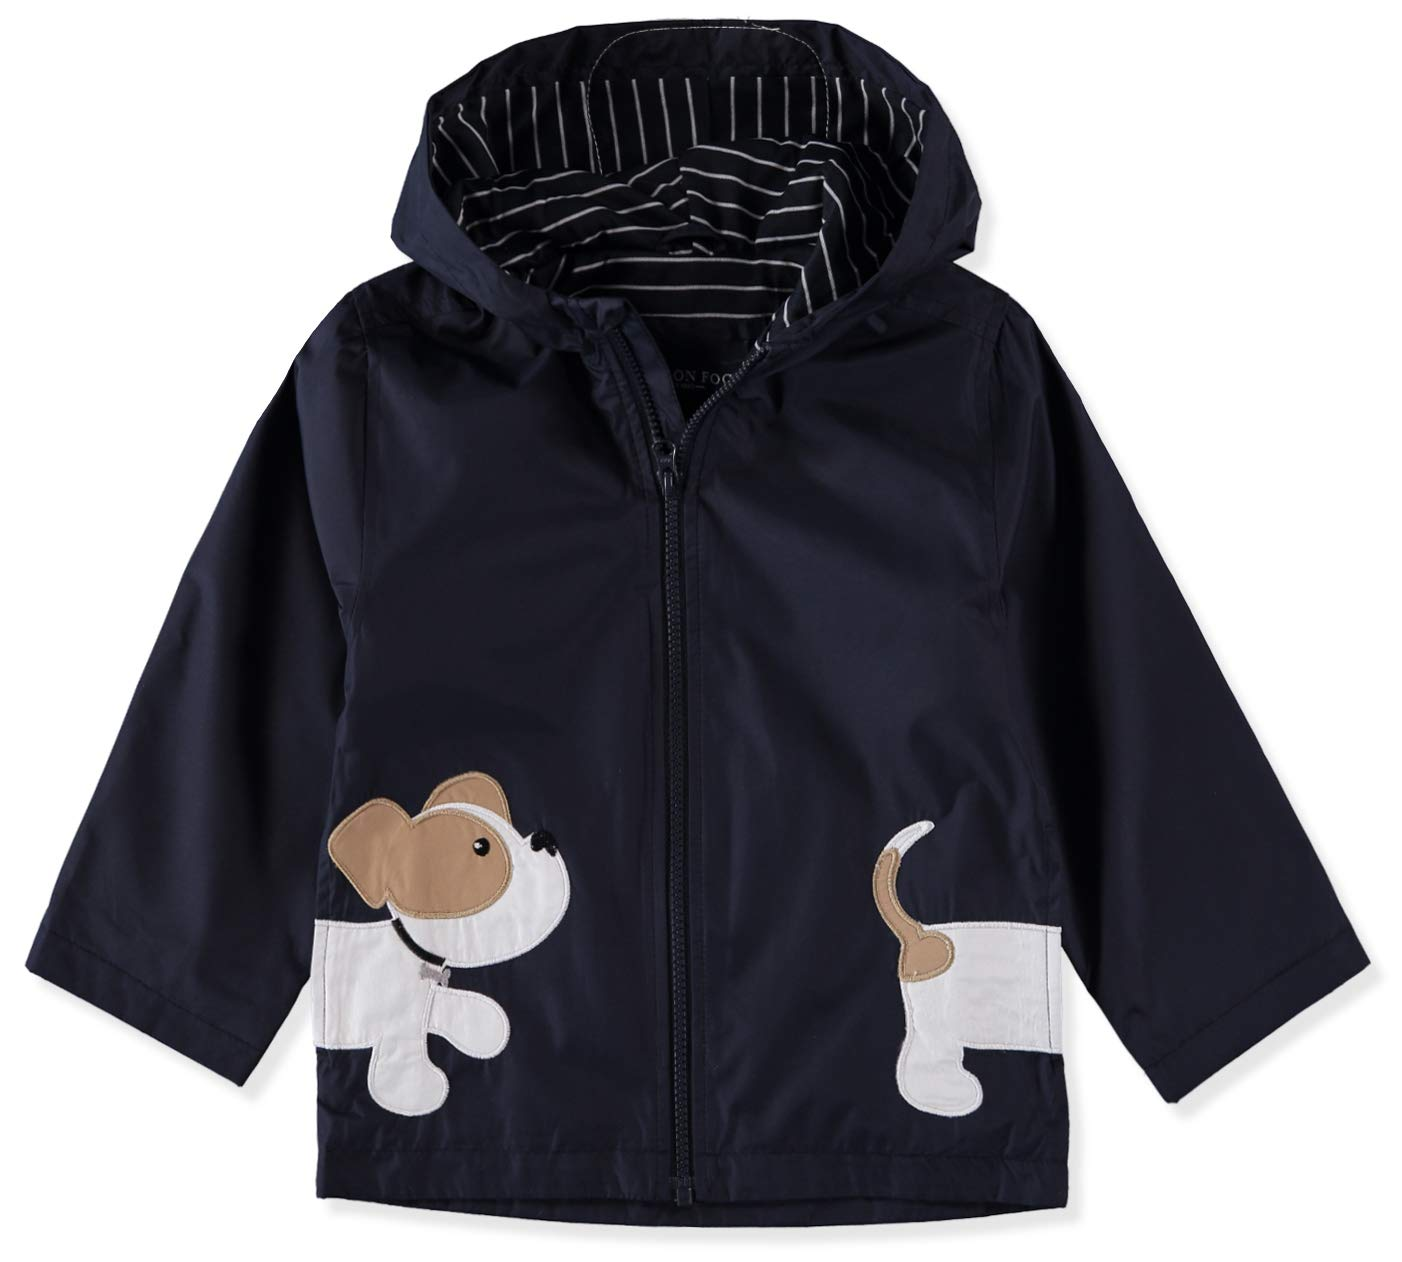 London Fog Hooded Little Animal Rain Slicker Rain Jacket (Navy Puppy, 12 Months)